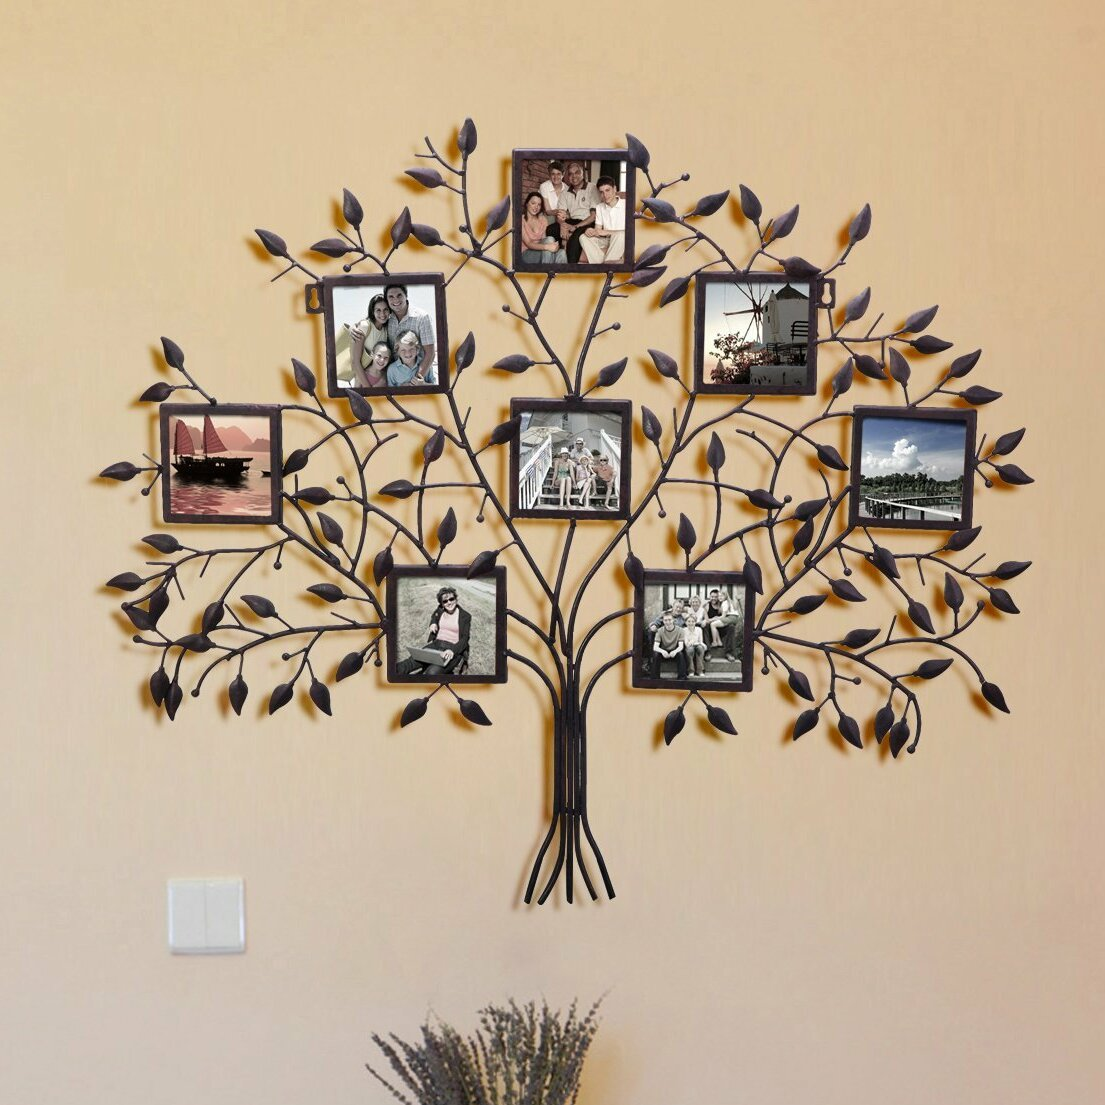 adecotrading 8 opening decorative family tree wall hanging collage picture frame reviews wayfair. Black Bedroom Furniture Sets. Home Design Ideas